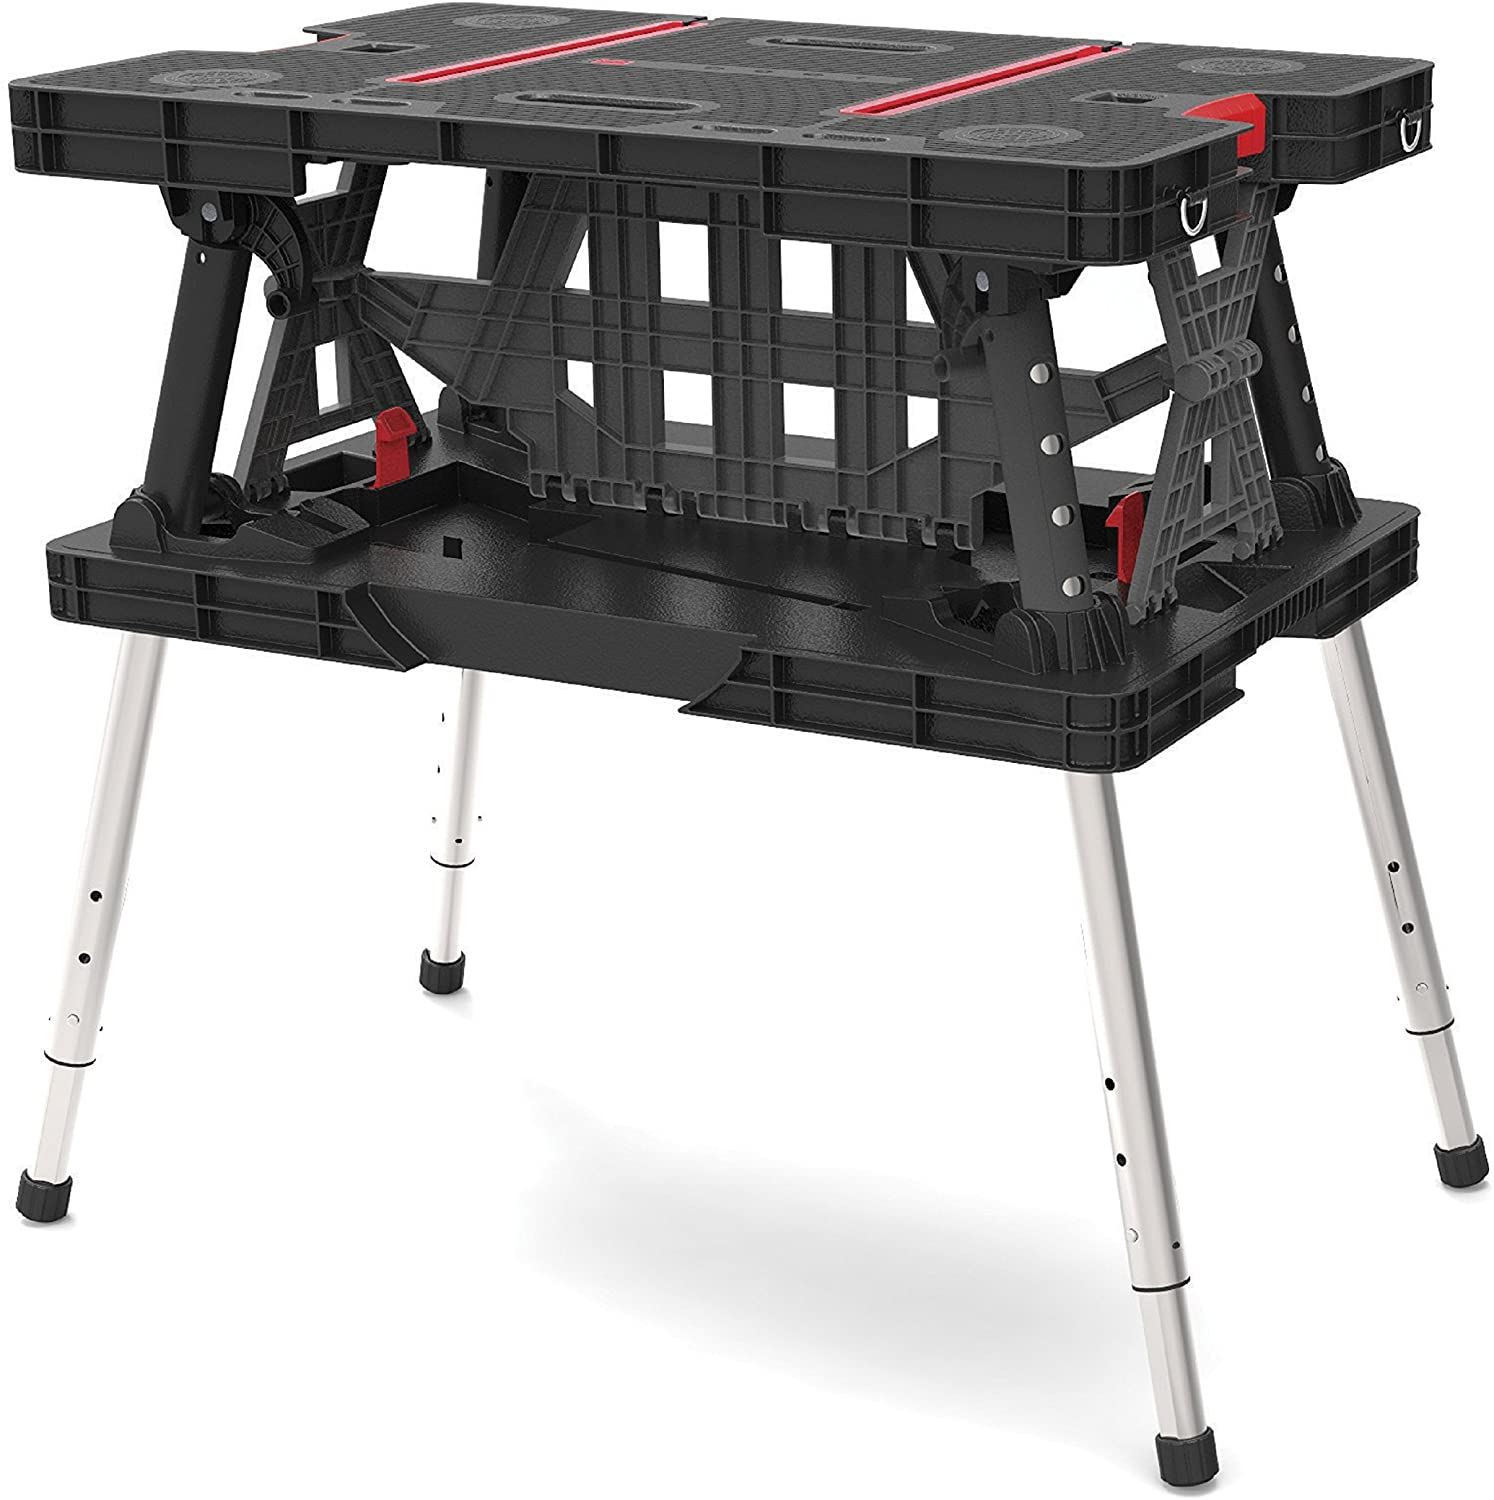 Keter Folding Compact Adjustable Folding Table